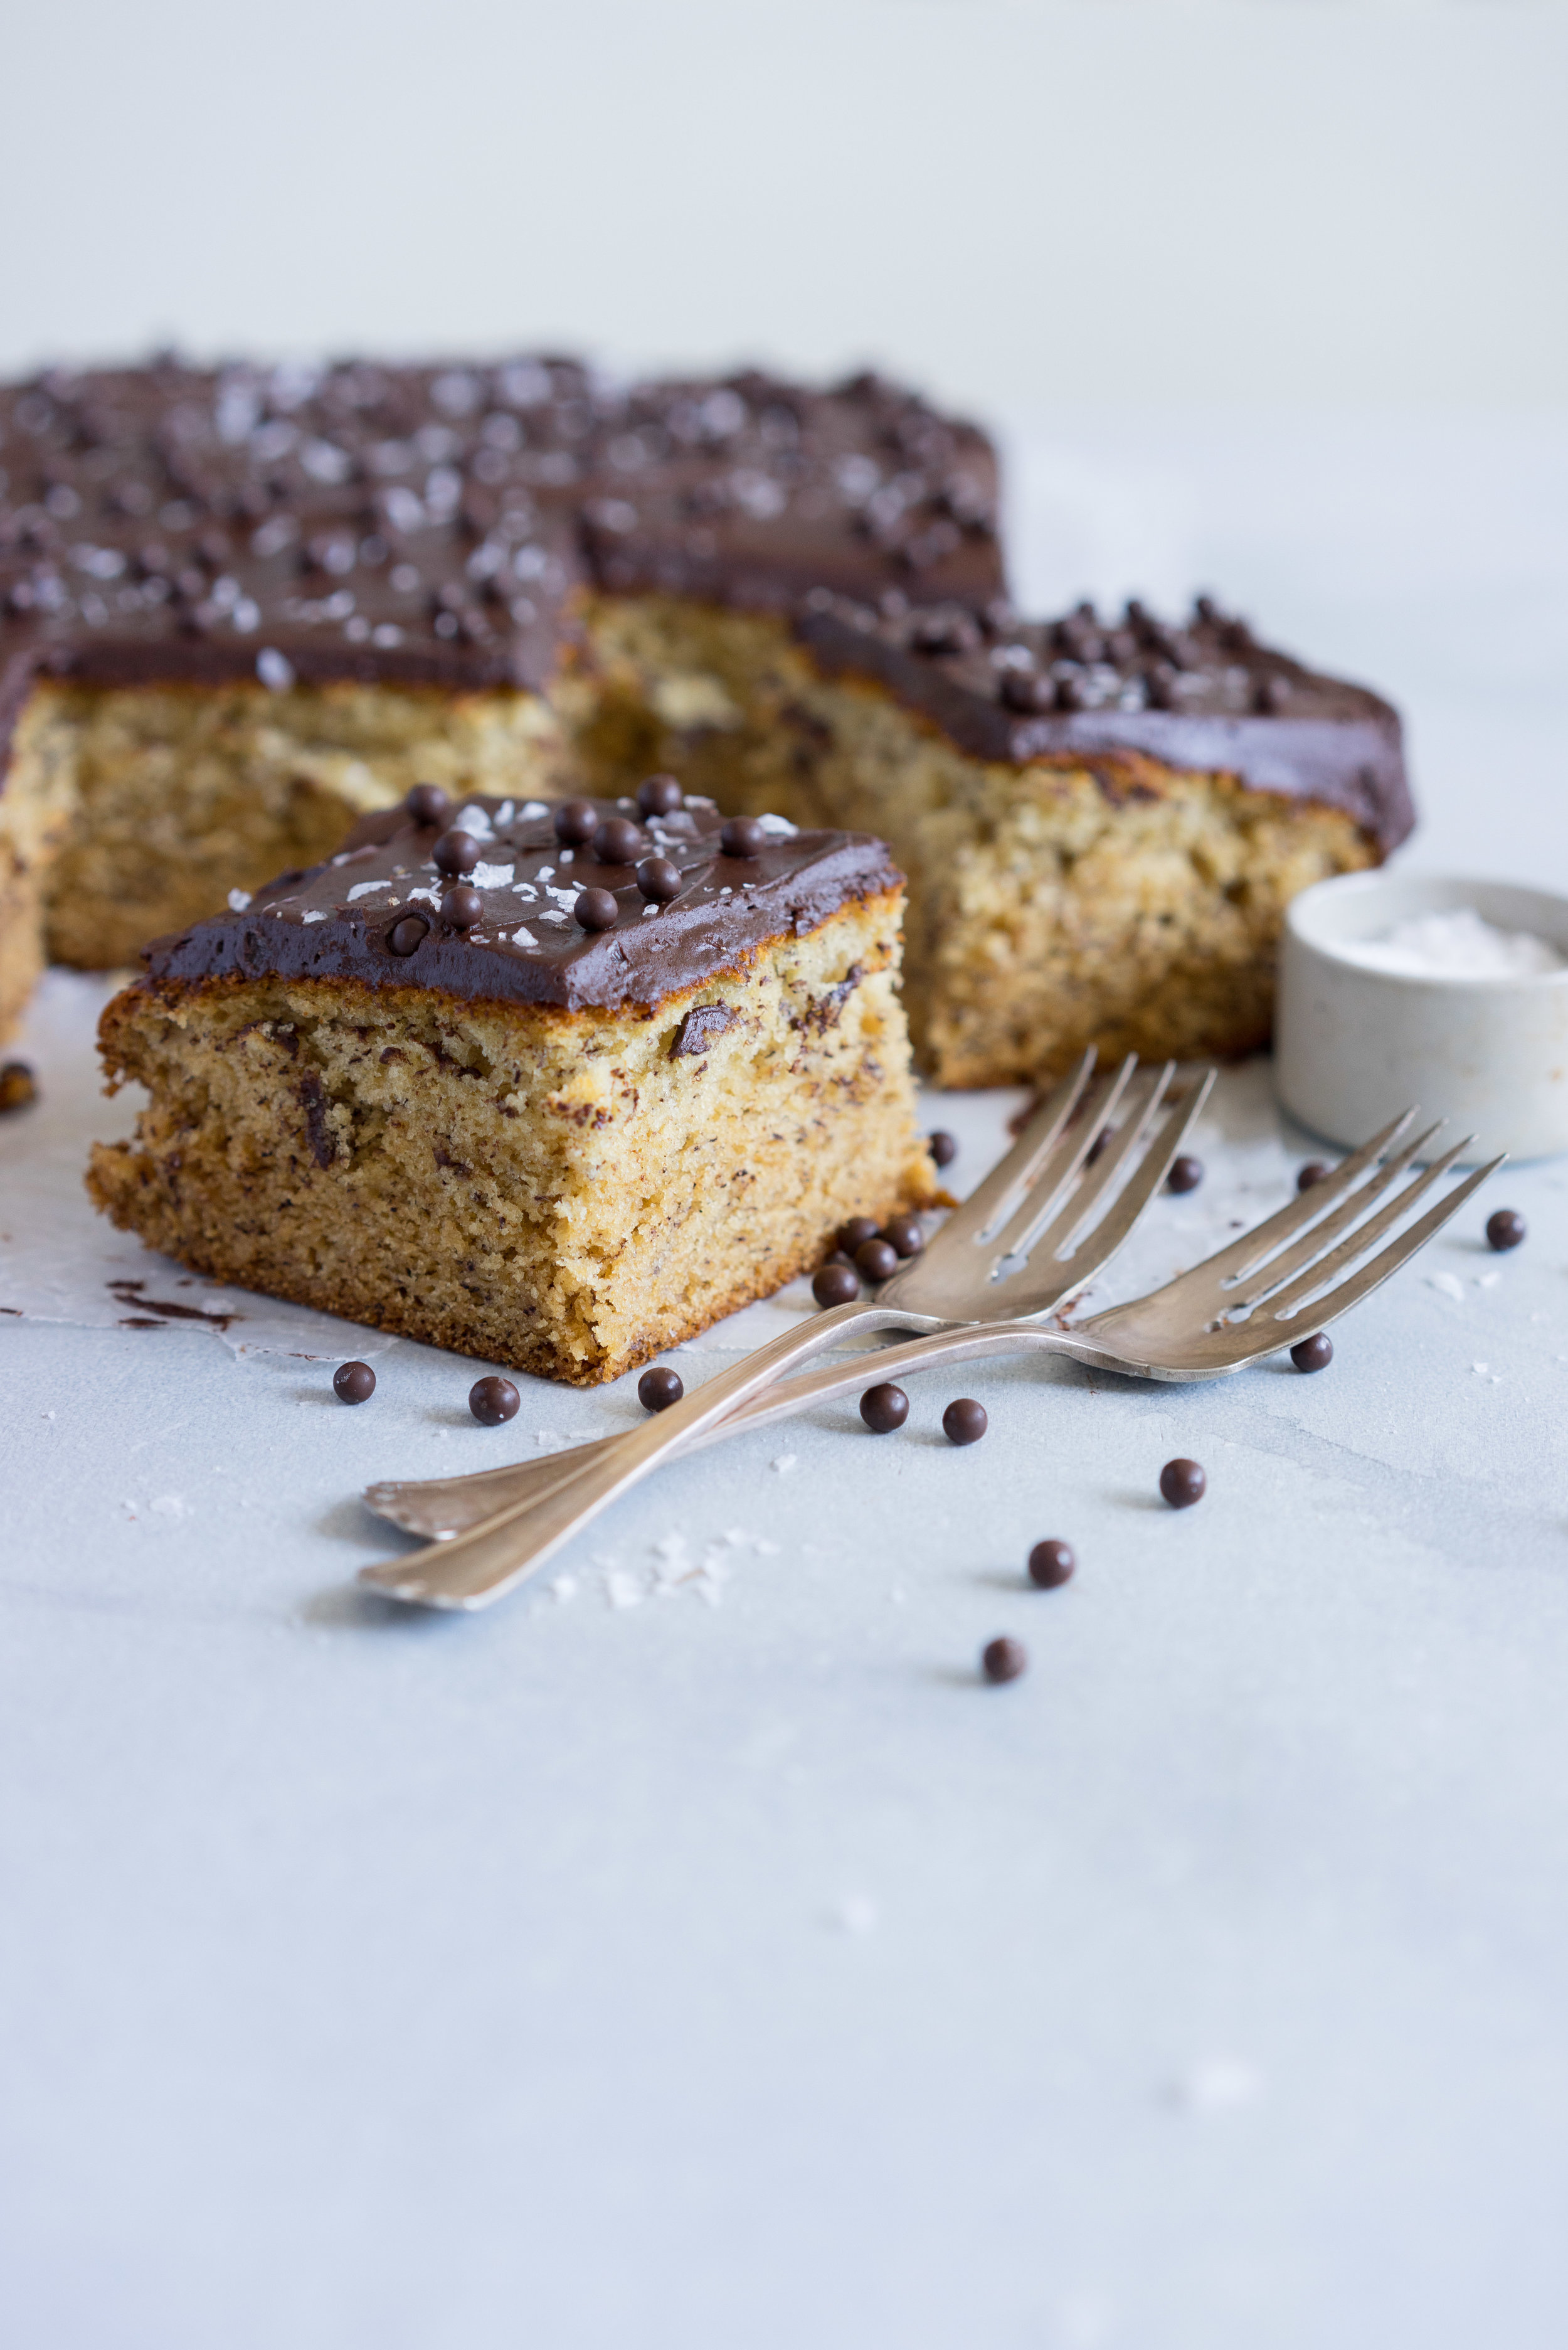 Banana Sheet Cake with Whipped Dark Chocolate Ganache. A little bit fancy but perfect for a crowd, this banana sheet cake will be your secret dessert weapon! #bananacake #sheetcake #chocolateganache #chocolatefrosting